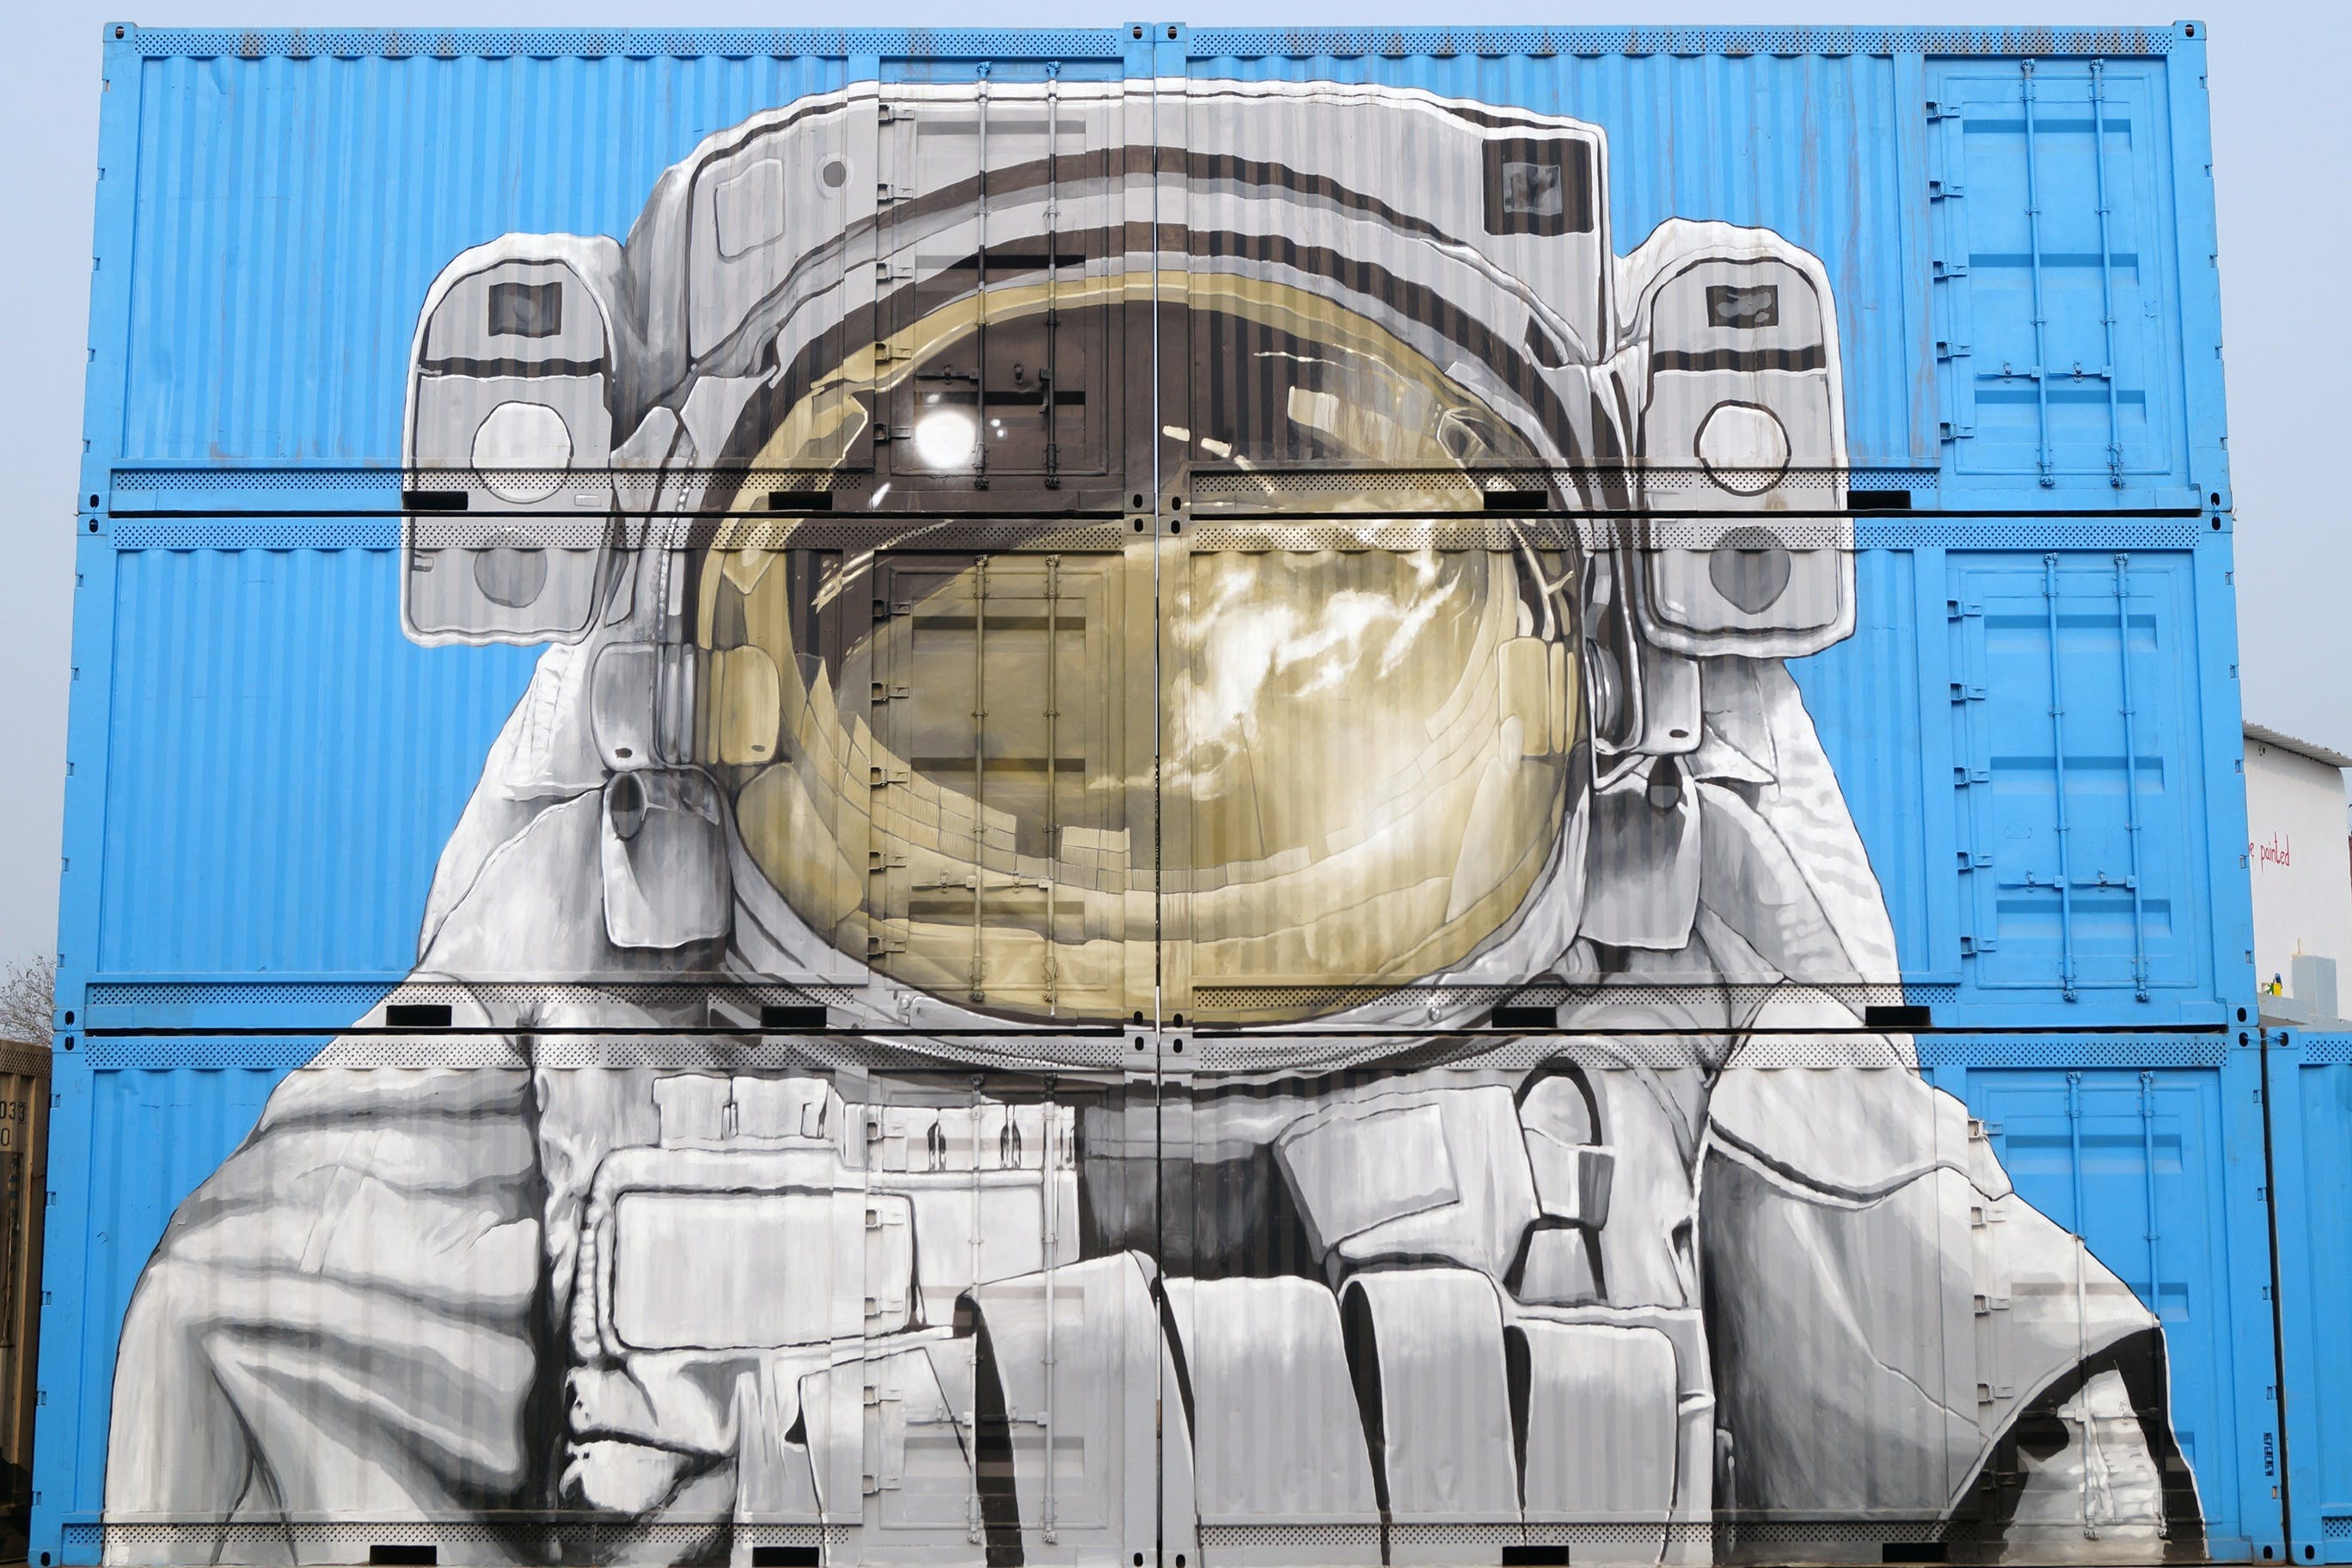 Astronaut Graffiti on Semi-Trailers